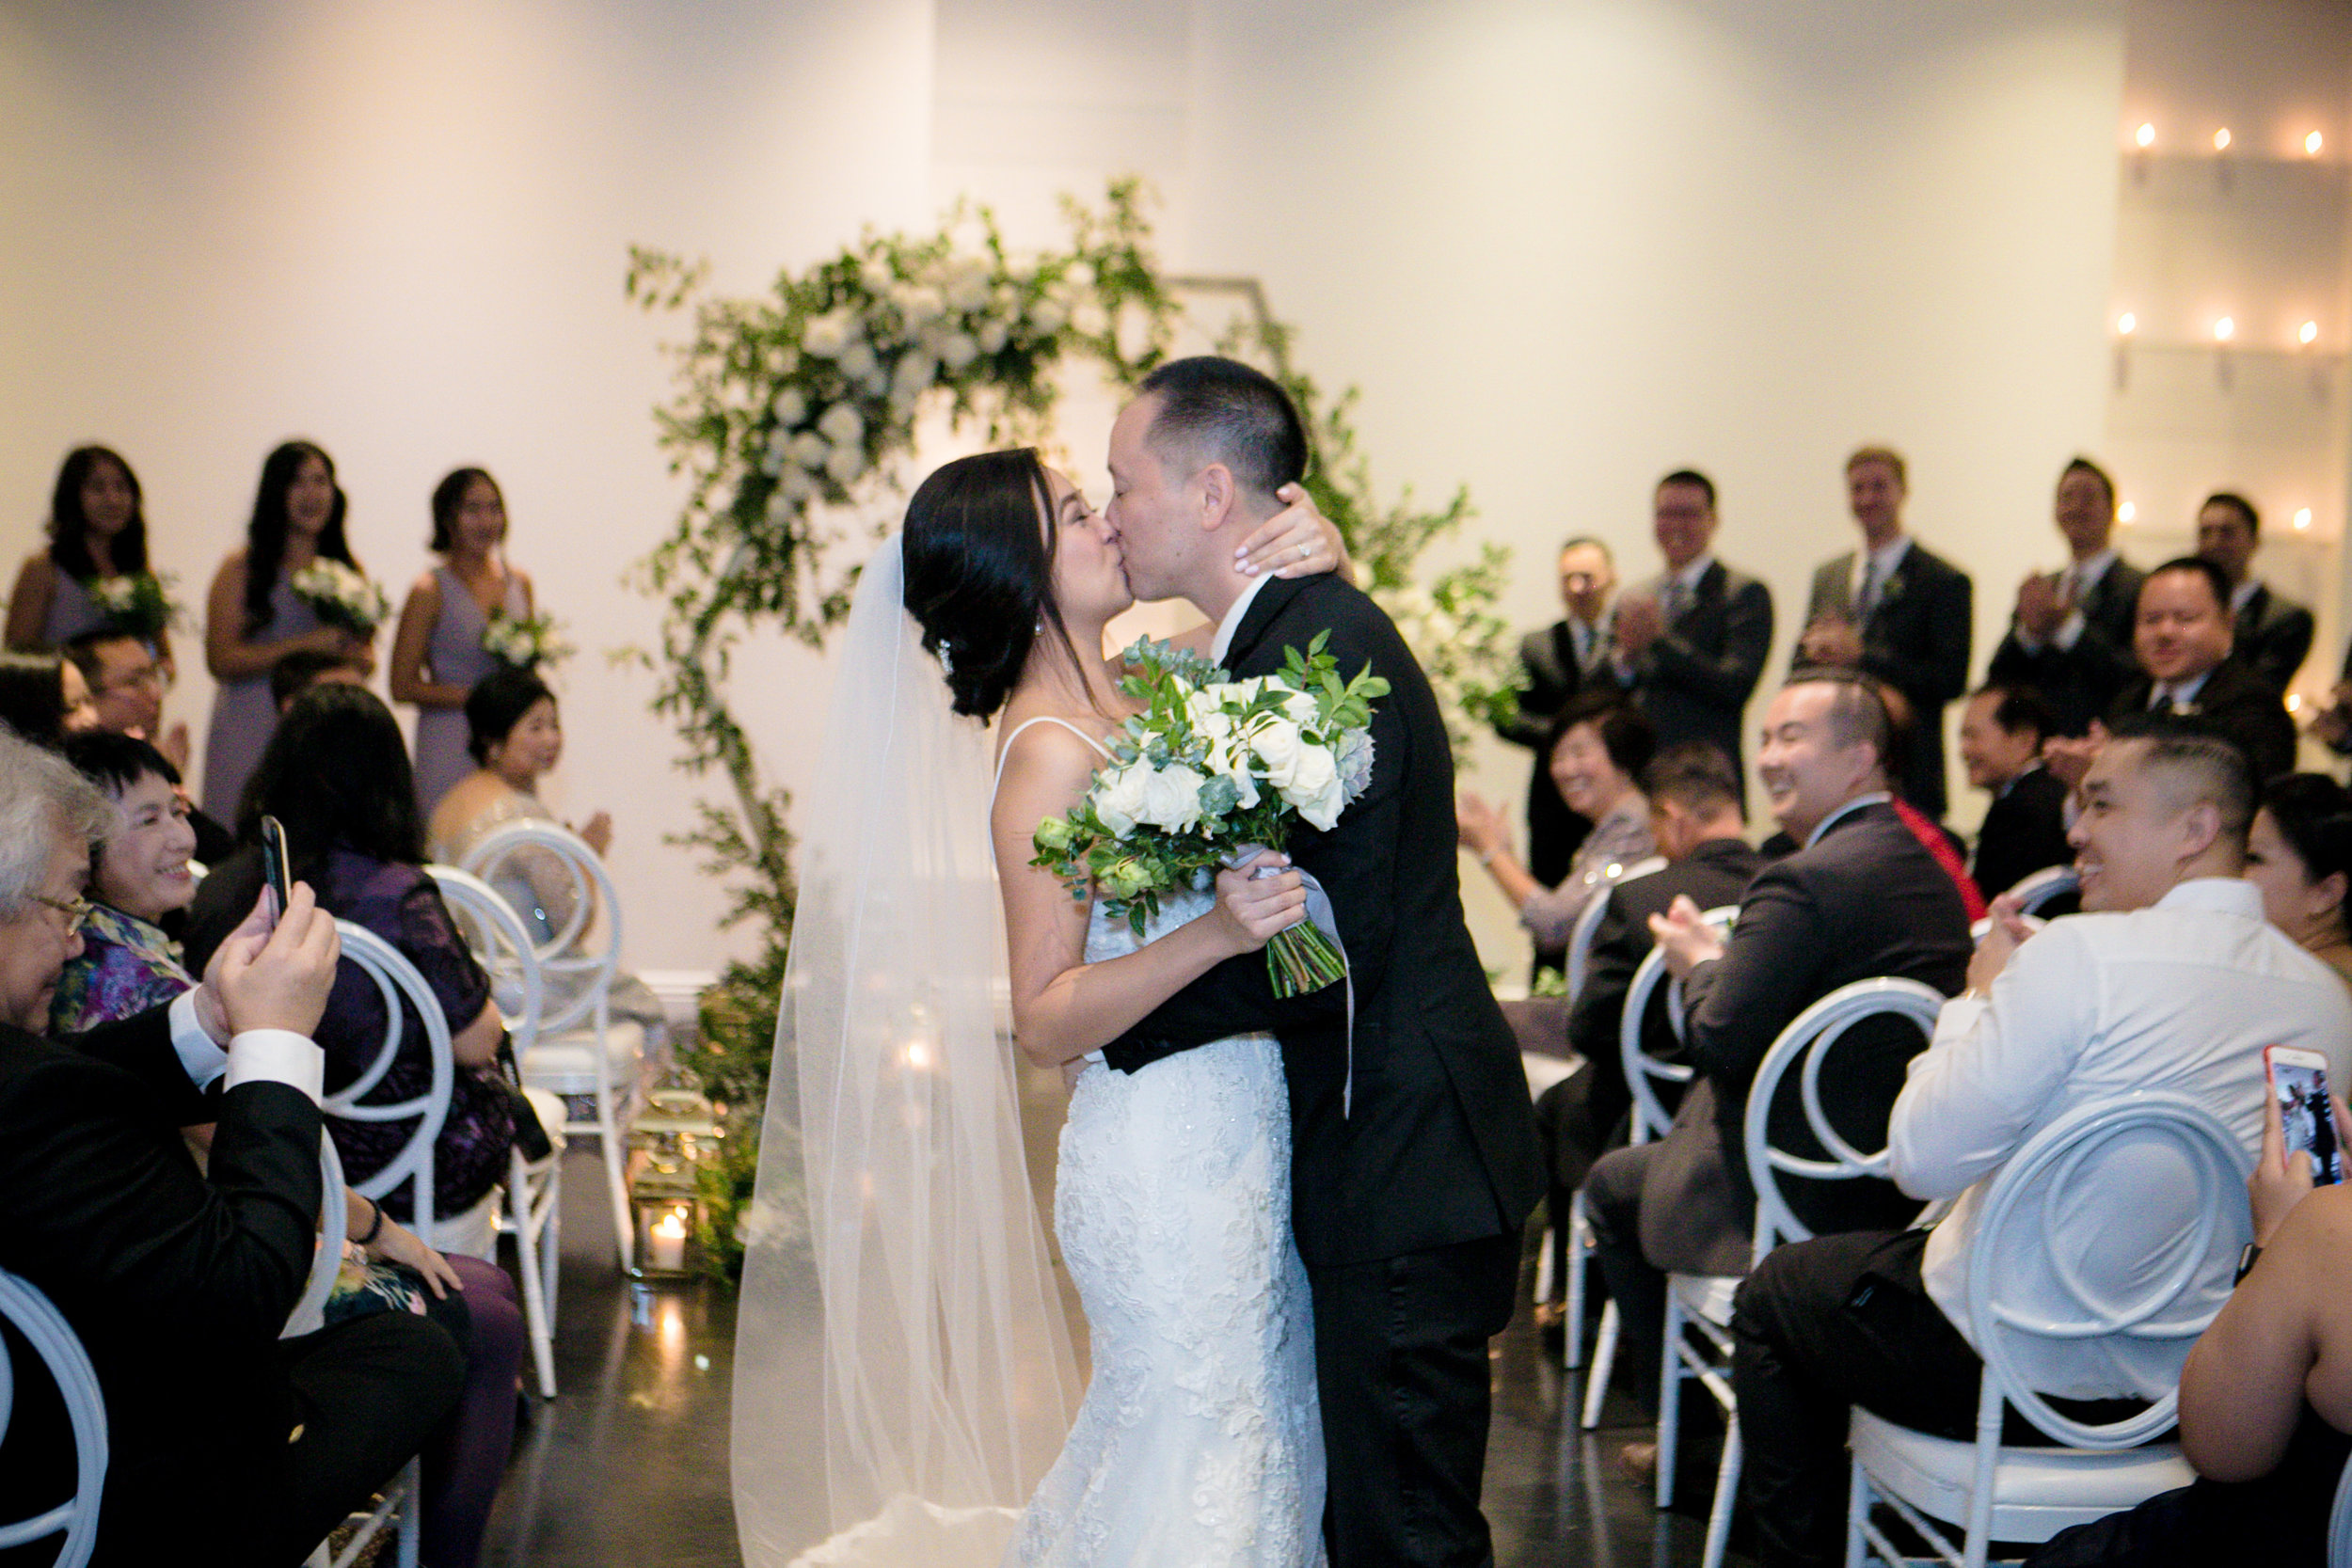 HuntingtonBeachWedding-KristinaLeePhotography-893.jpg